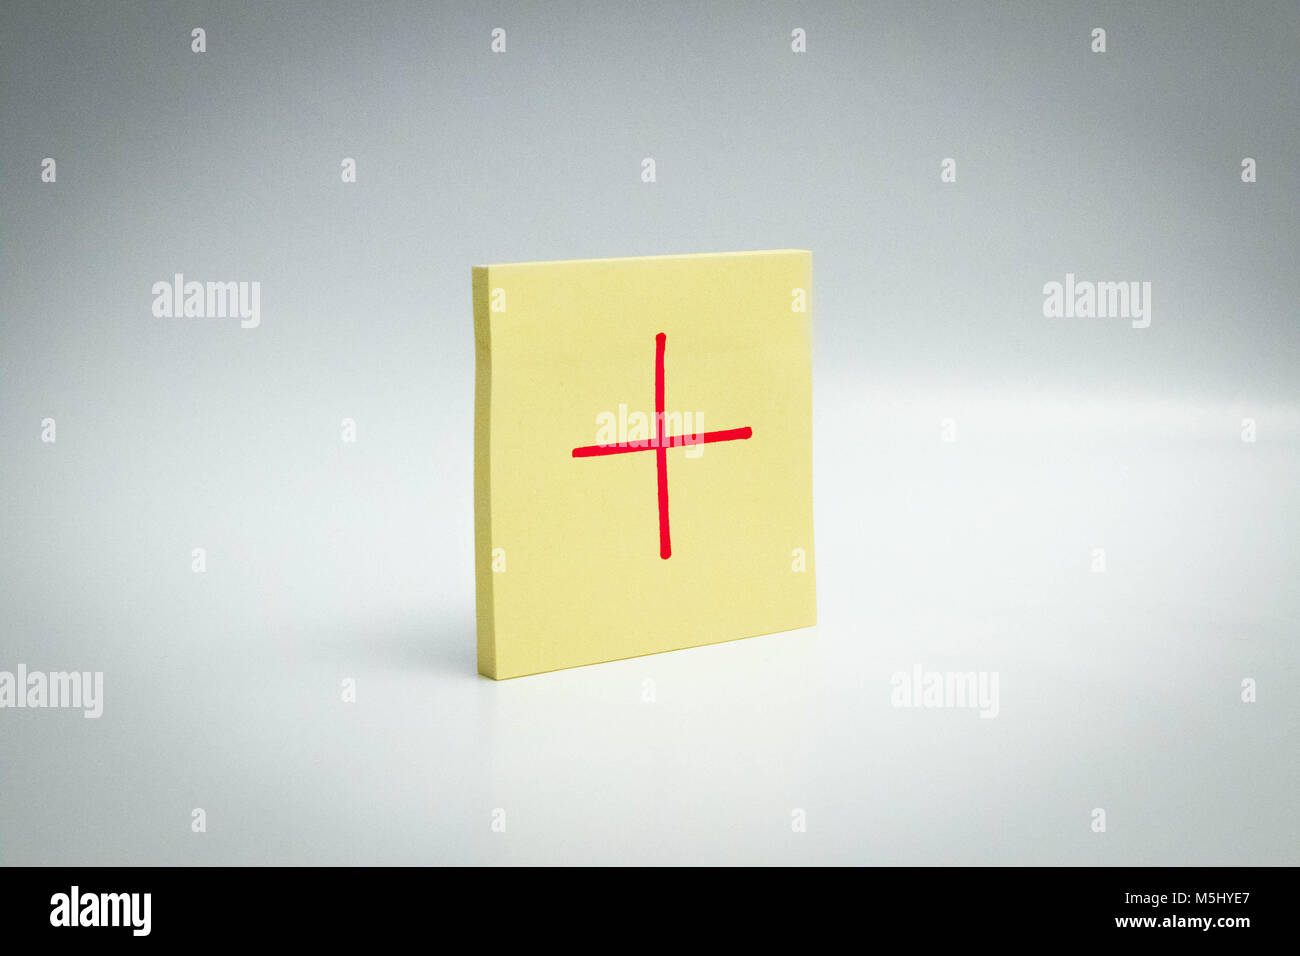 interrogation mark correct + plus post it note paper Exclamation mark - Stock Image